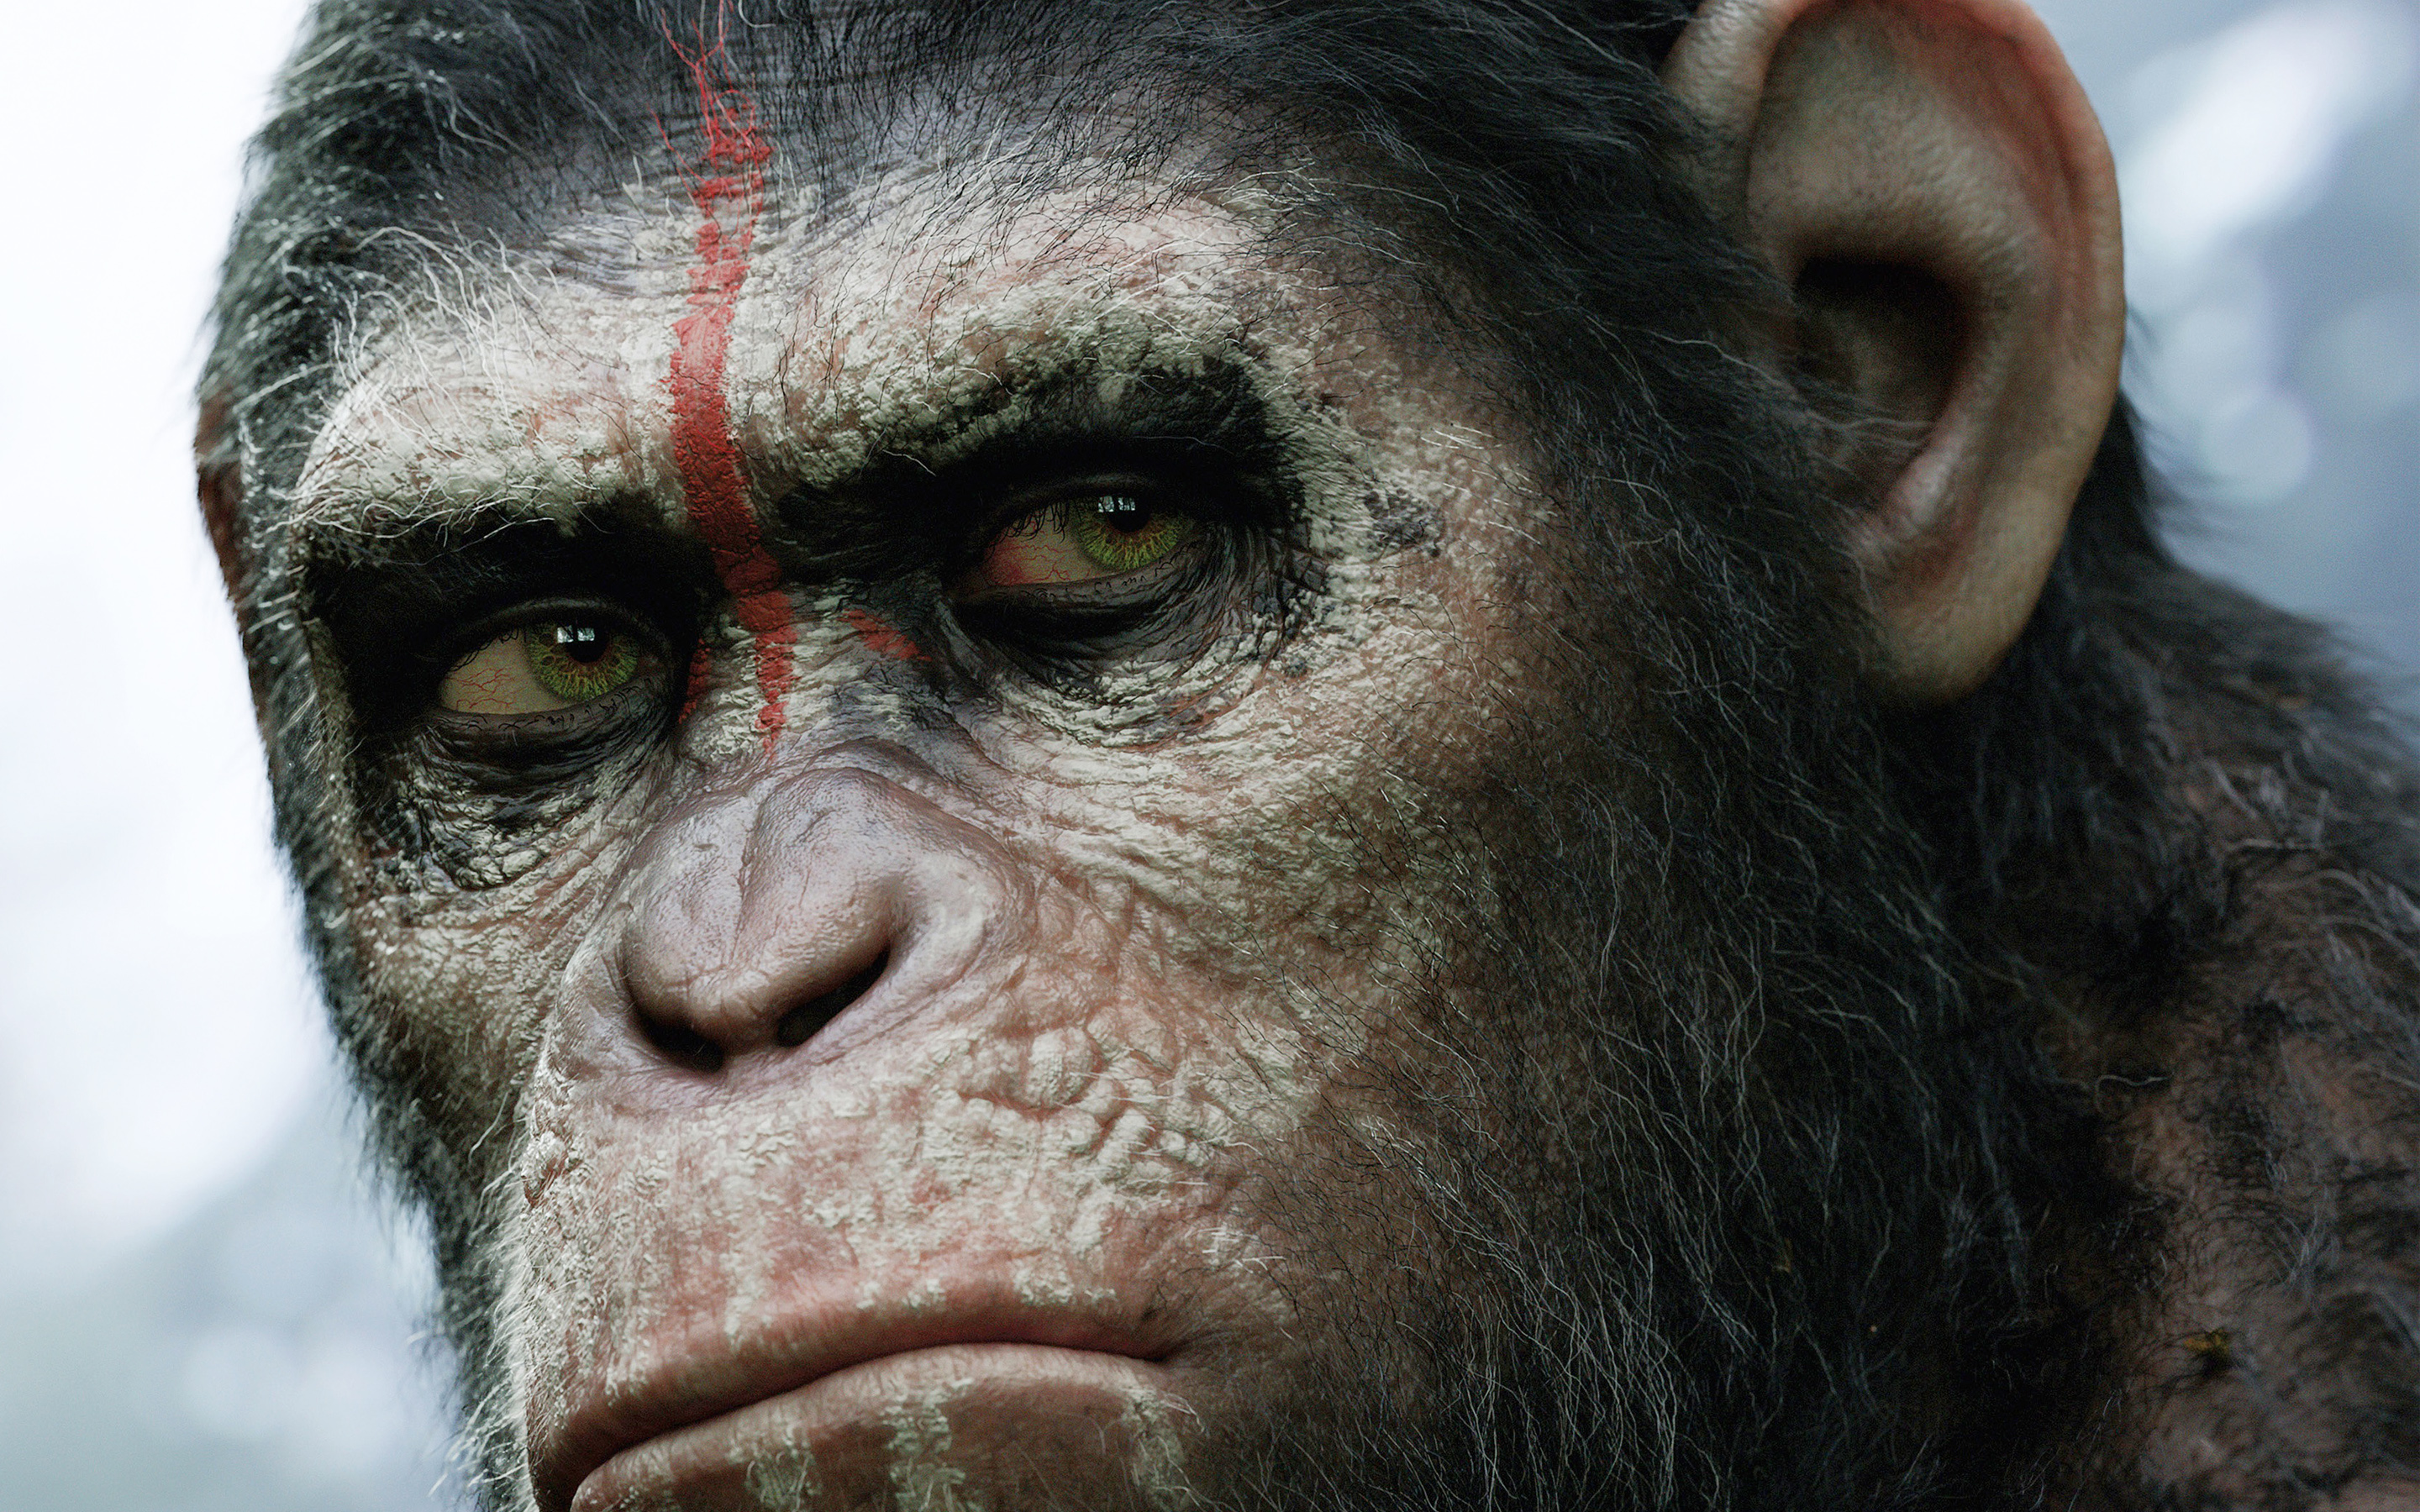 Apes 4k Wallpapers For Your Desktop Or Mobile Screen Free And Easy